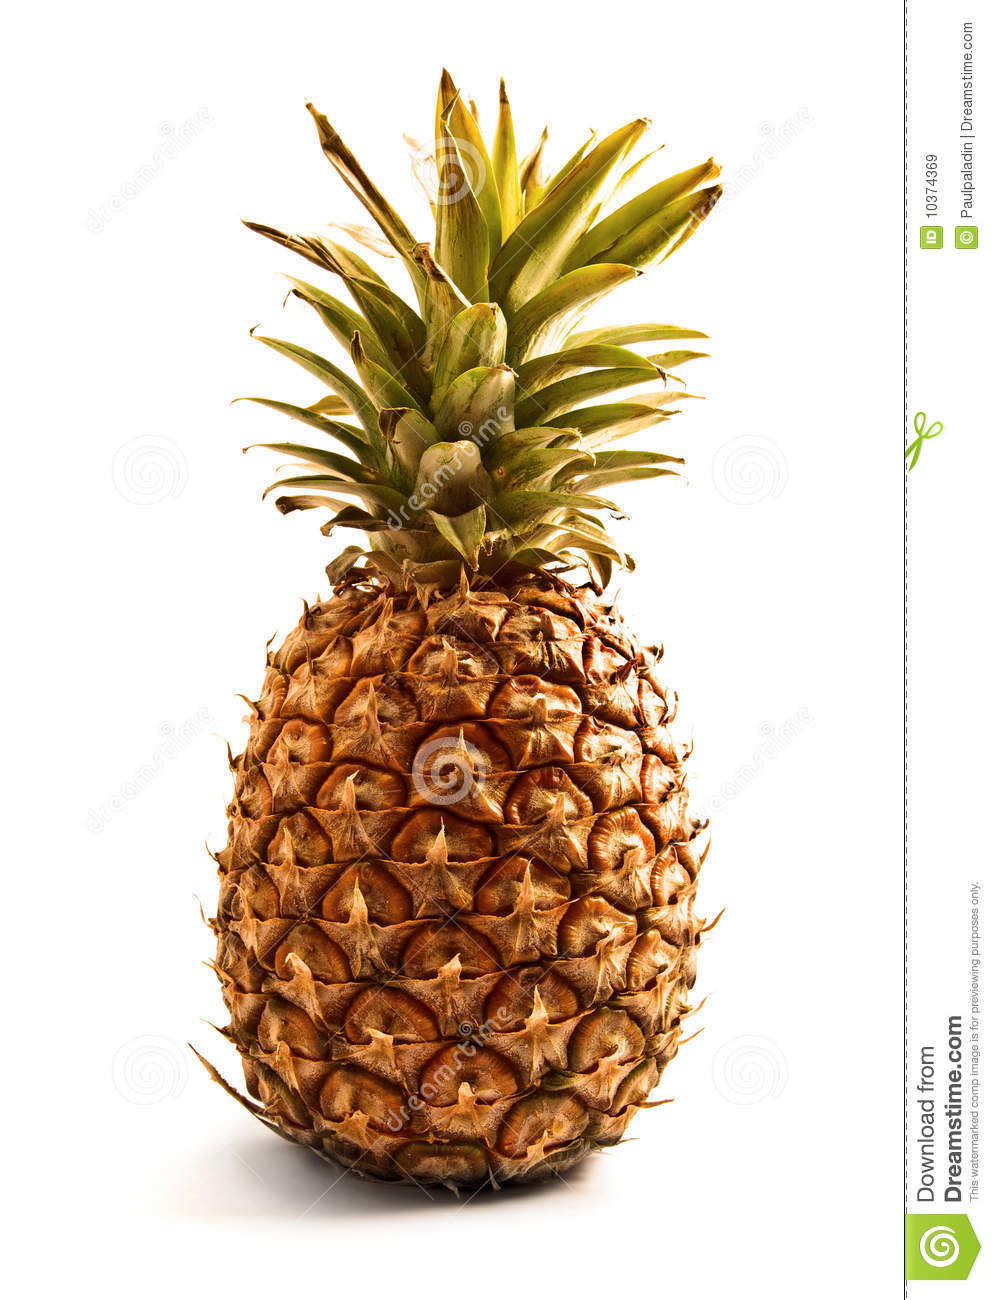 Pineapple business plan